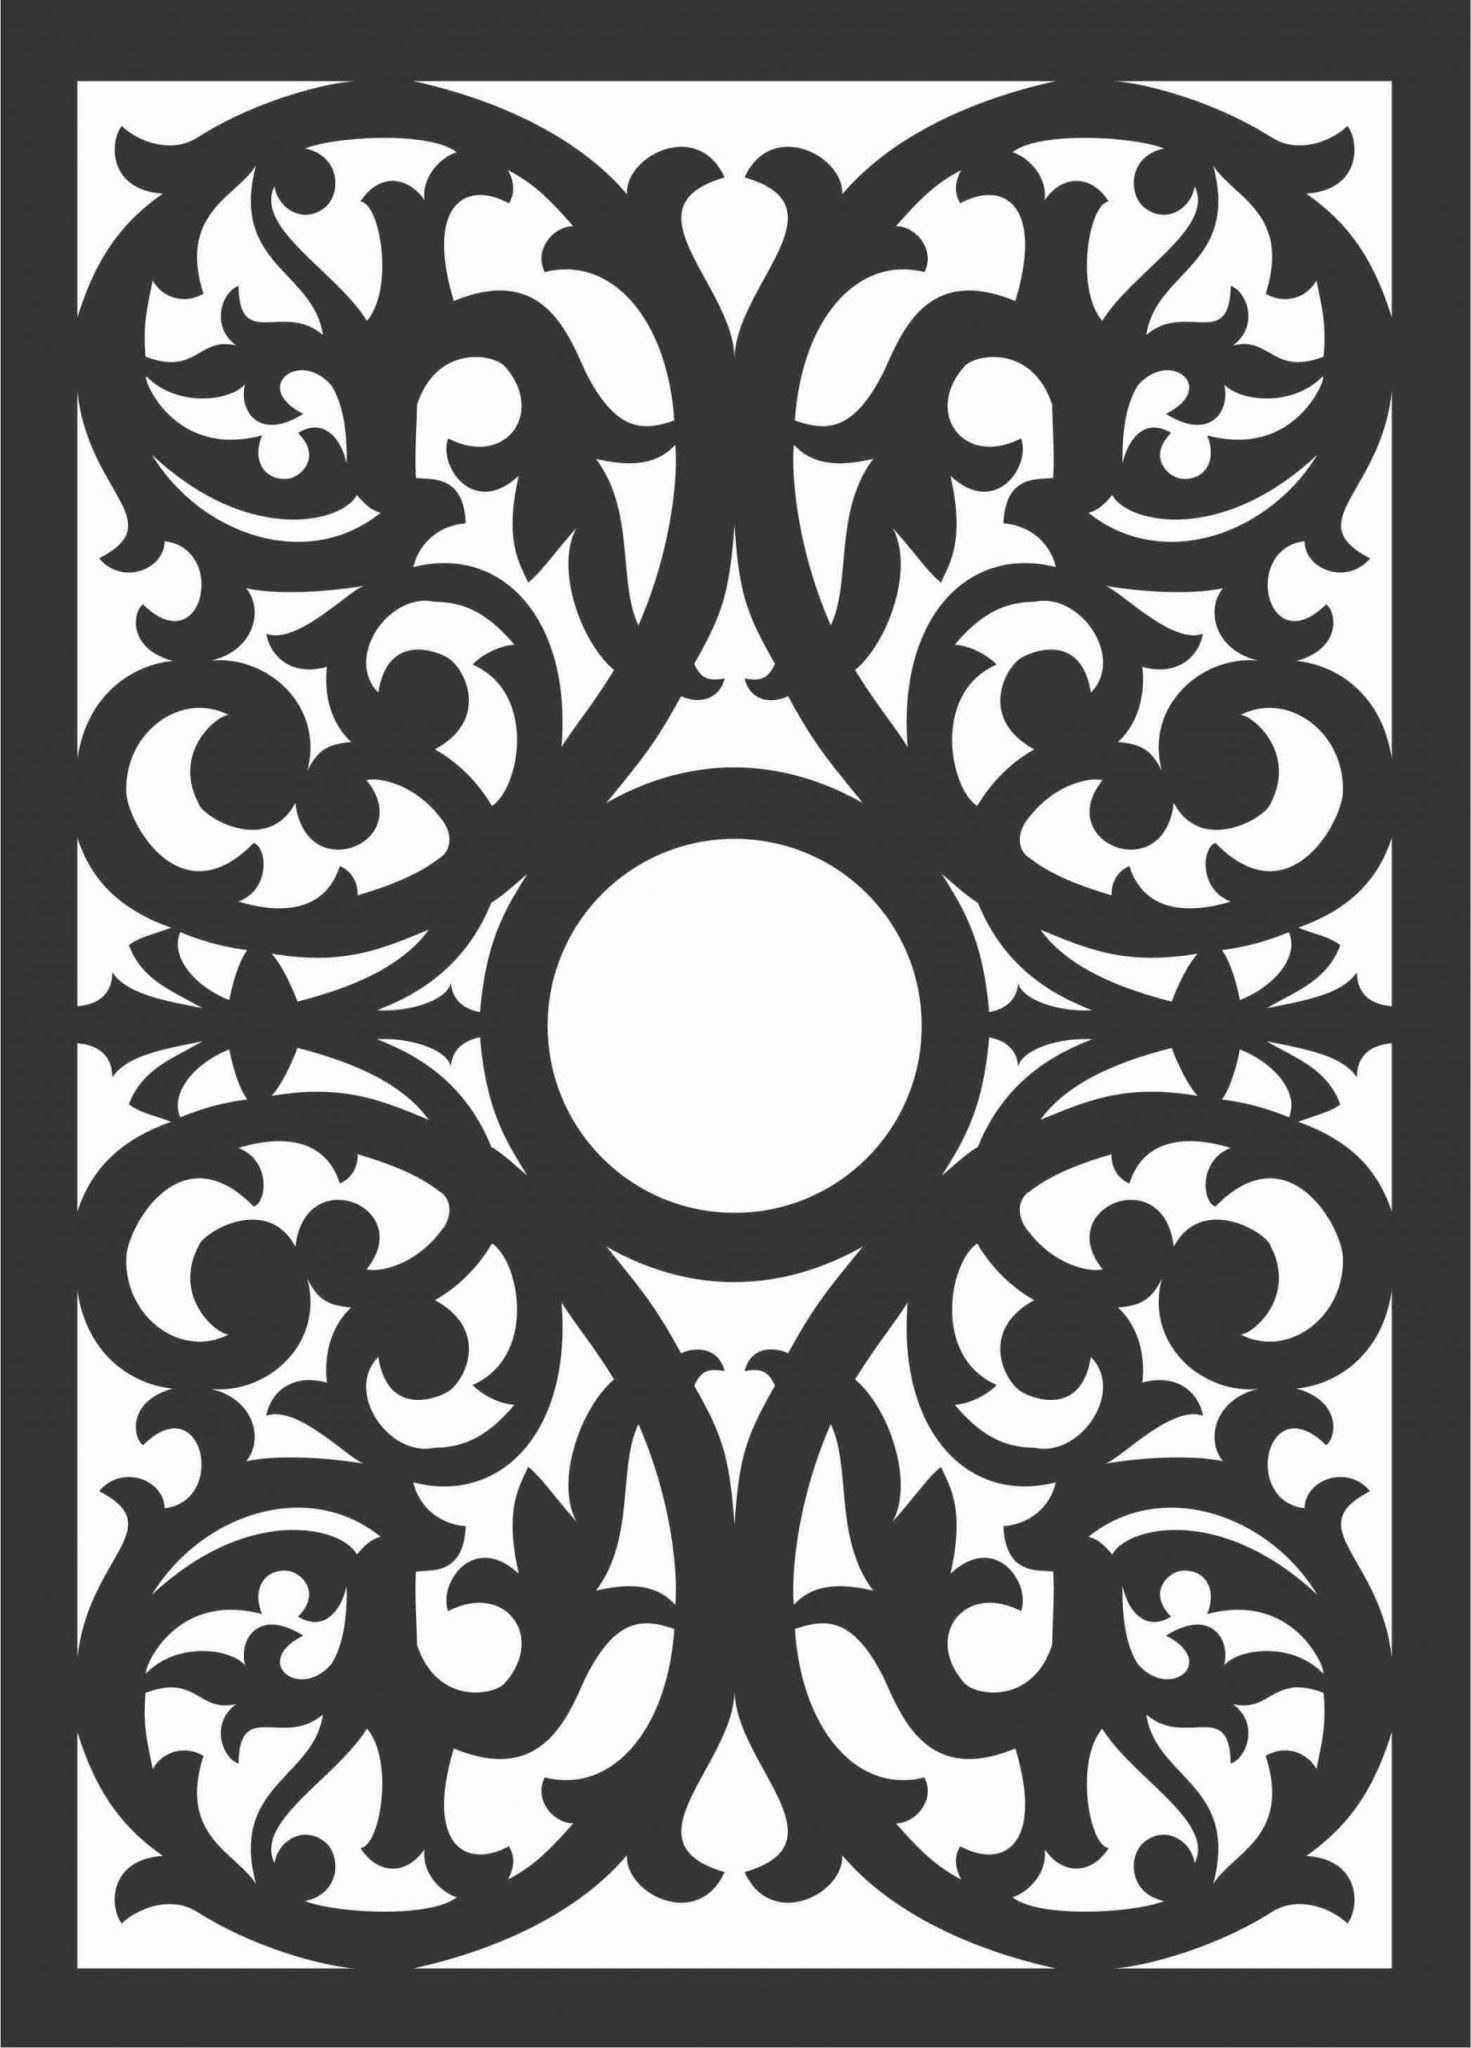 Floral Screen Patterns Design 90 Free DXF File